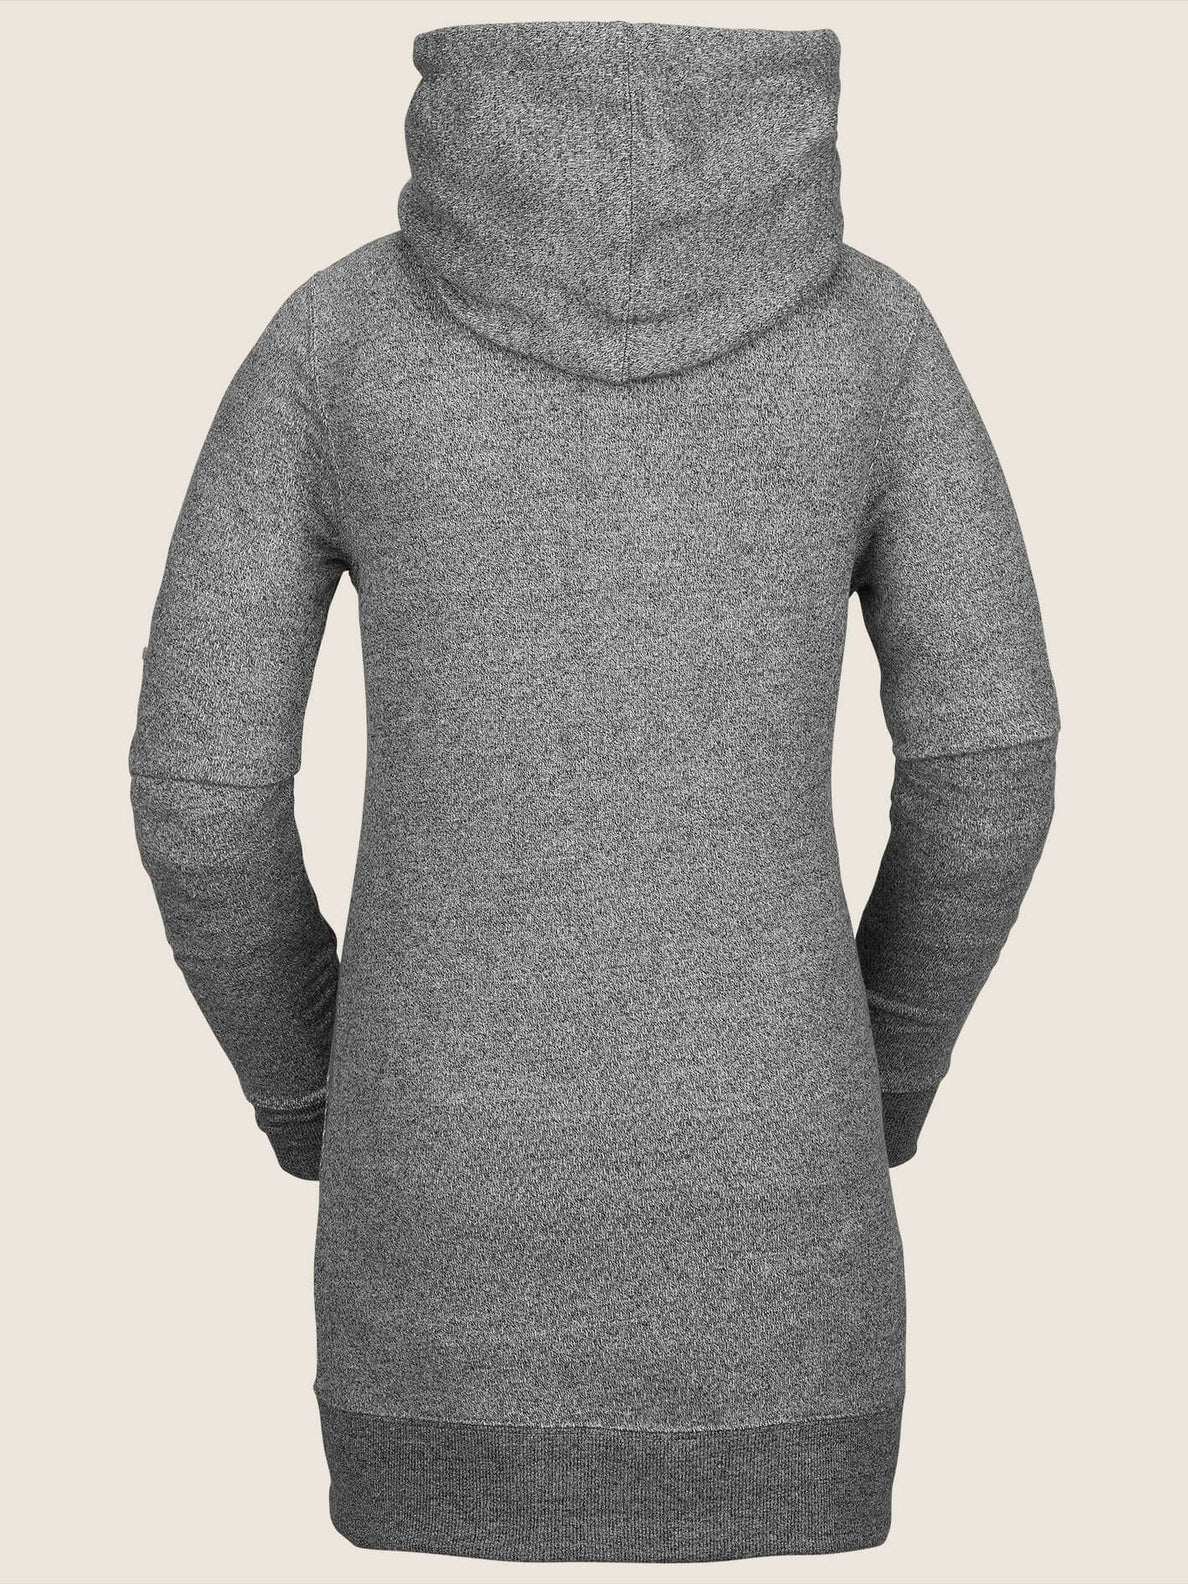 Tower P/Over Sweatshirt - Heather Grey